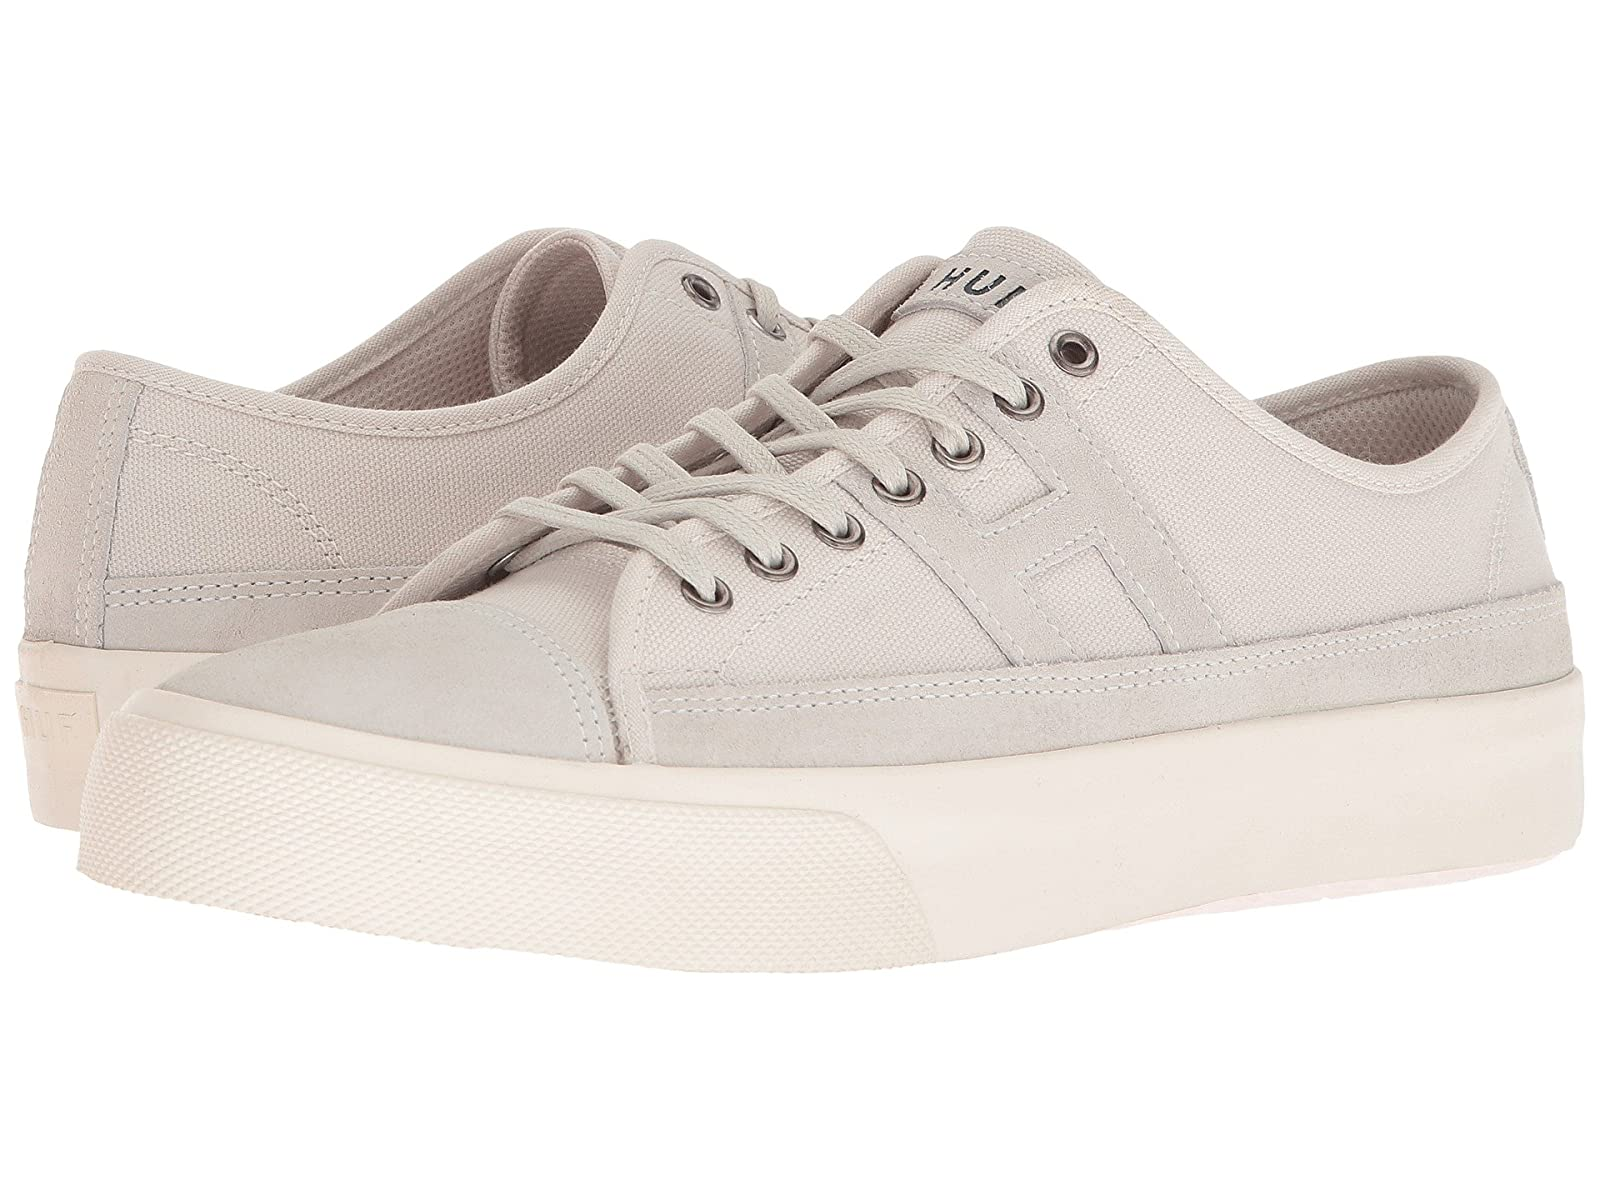 HUF Hupper 2 LoAtmospheric grades have affordable shoes